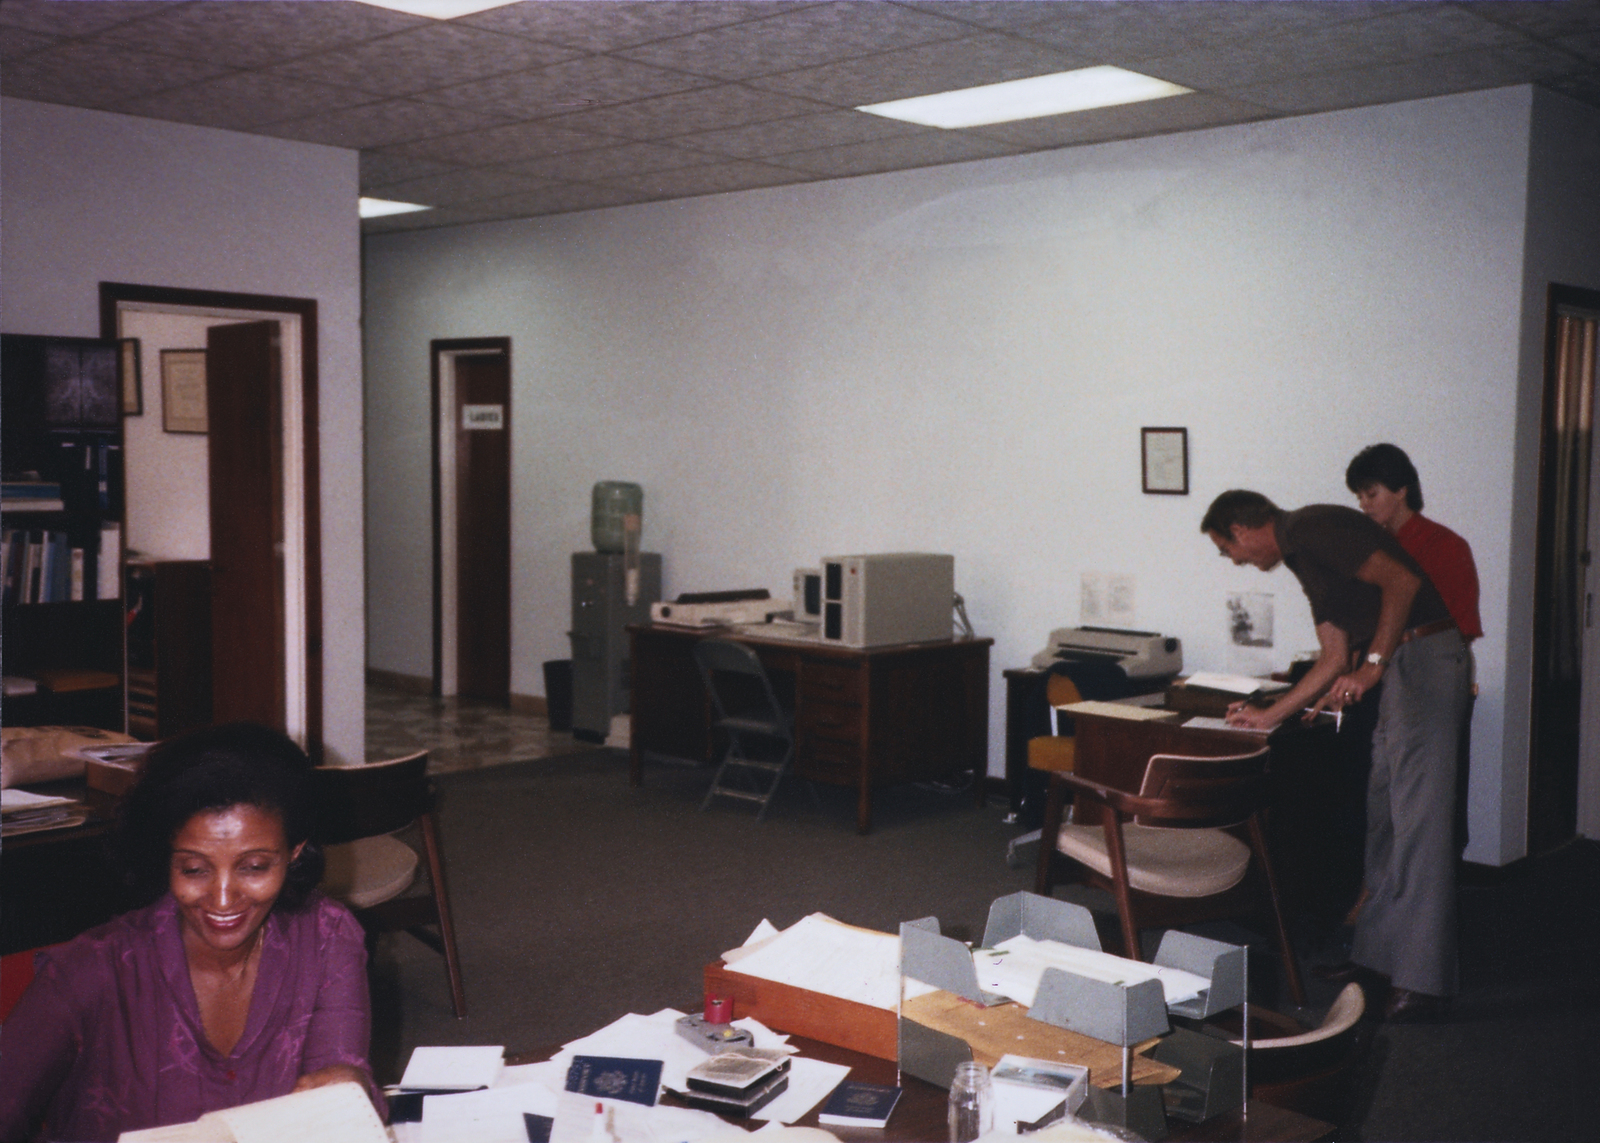 Addis Ababa - Annex Office Building - 1985